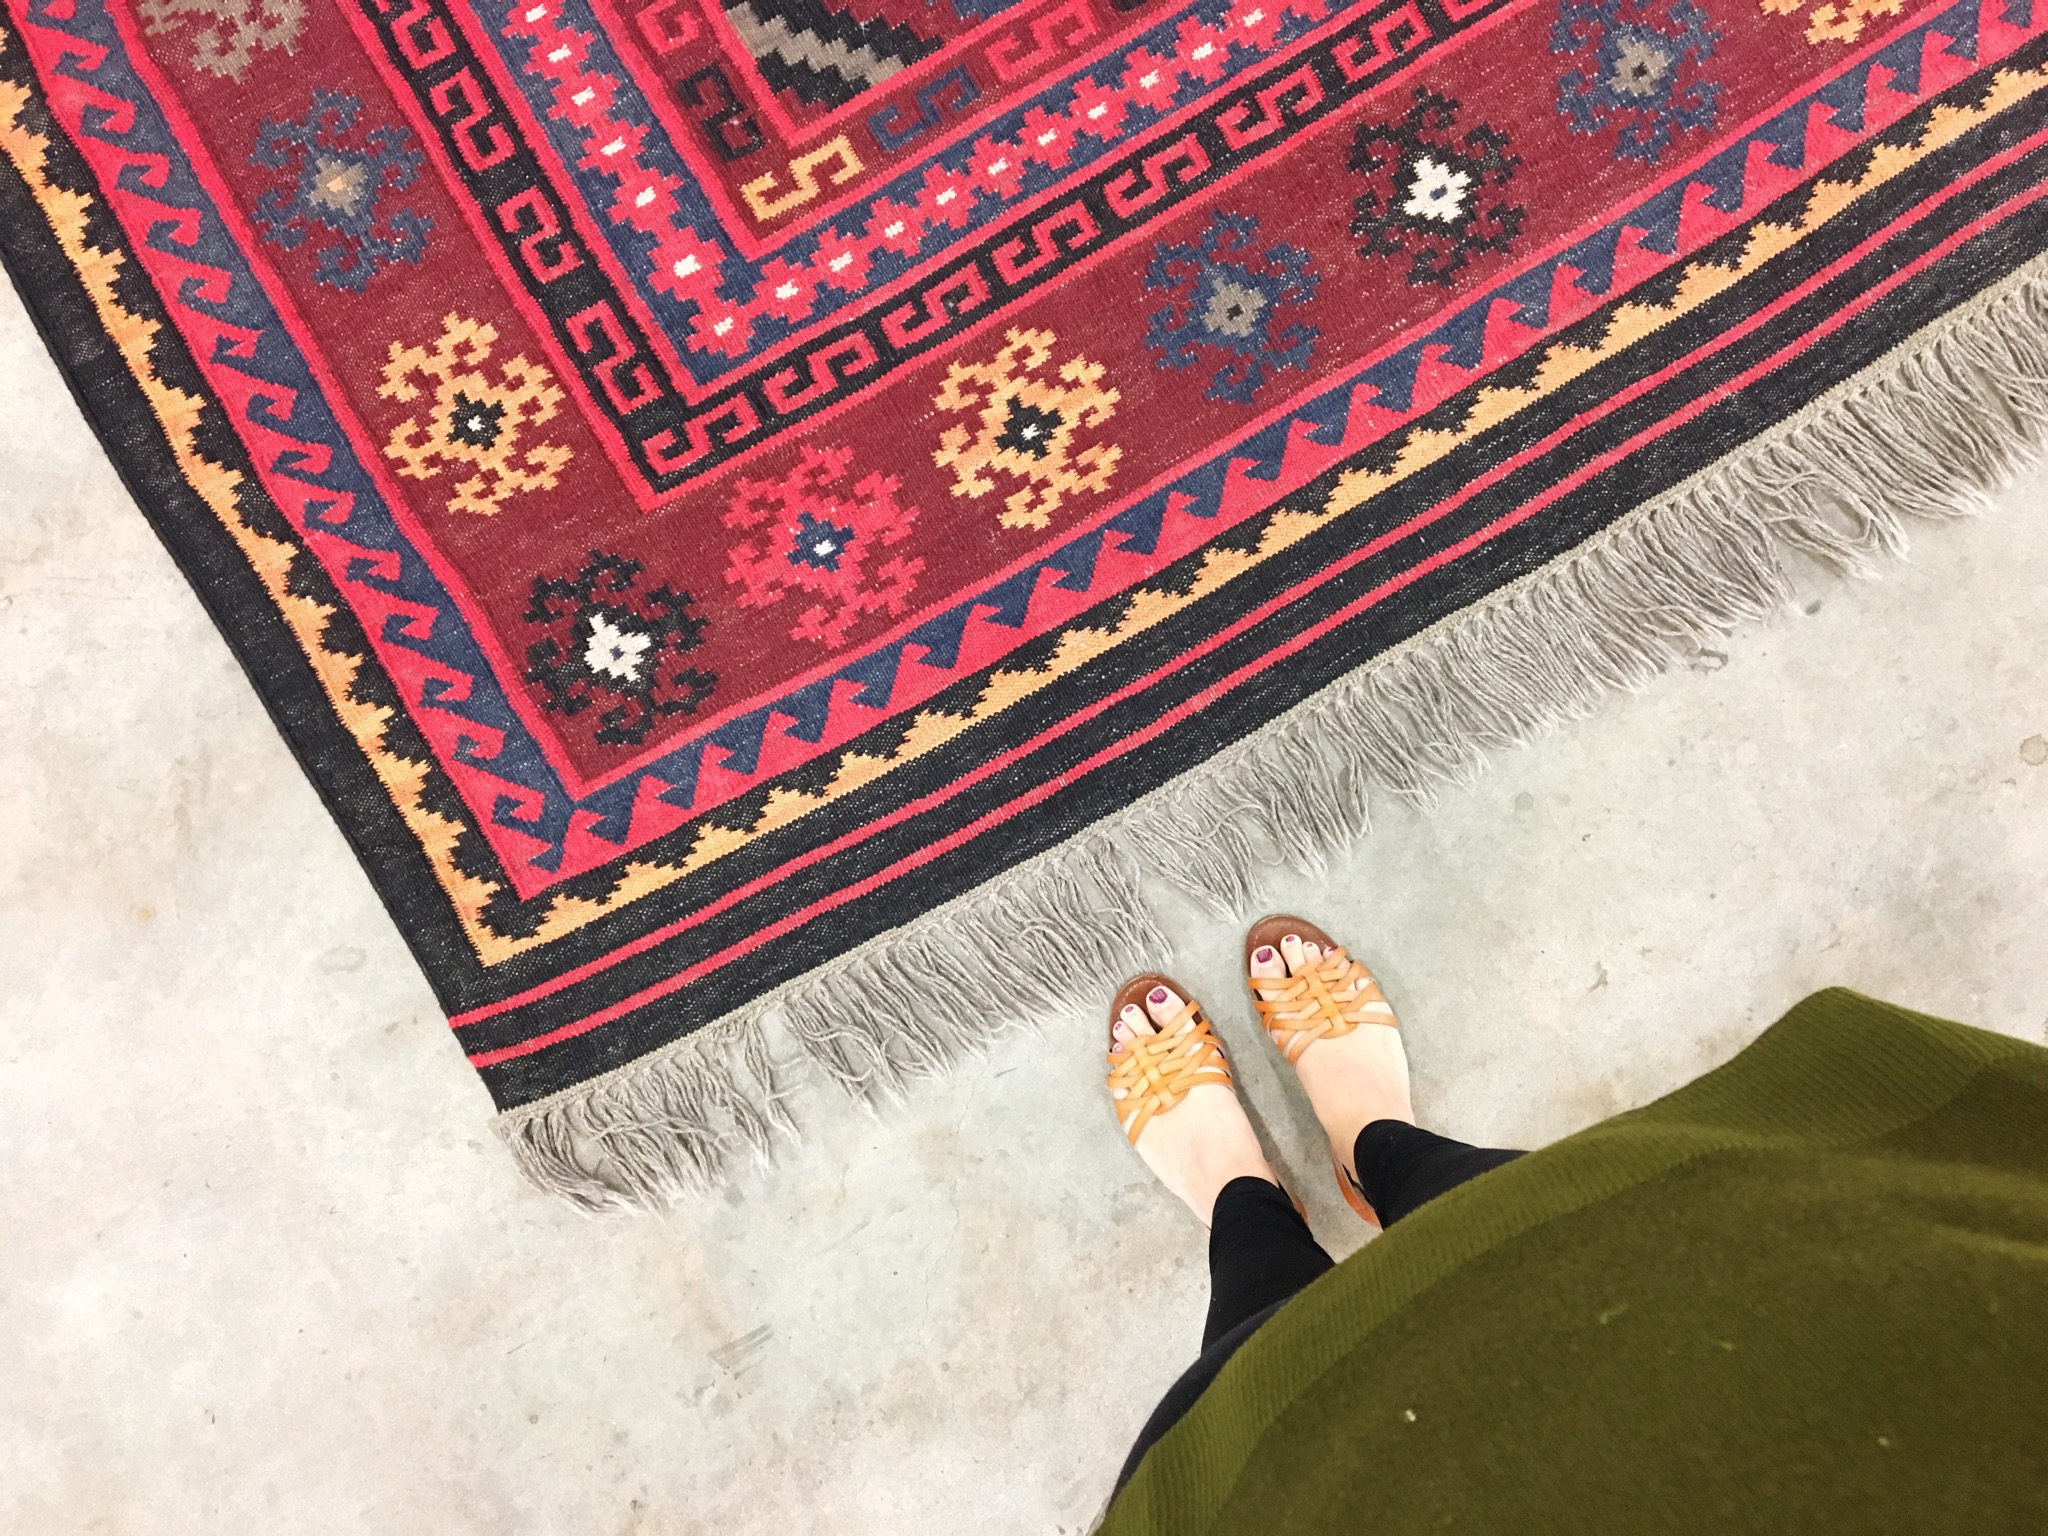 We brought this colorful Kilim rug into the shop last week. It's a big hit on the floor! Call us if you want to buy it. 918 794-7118.